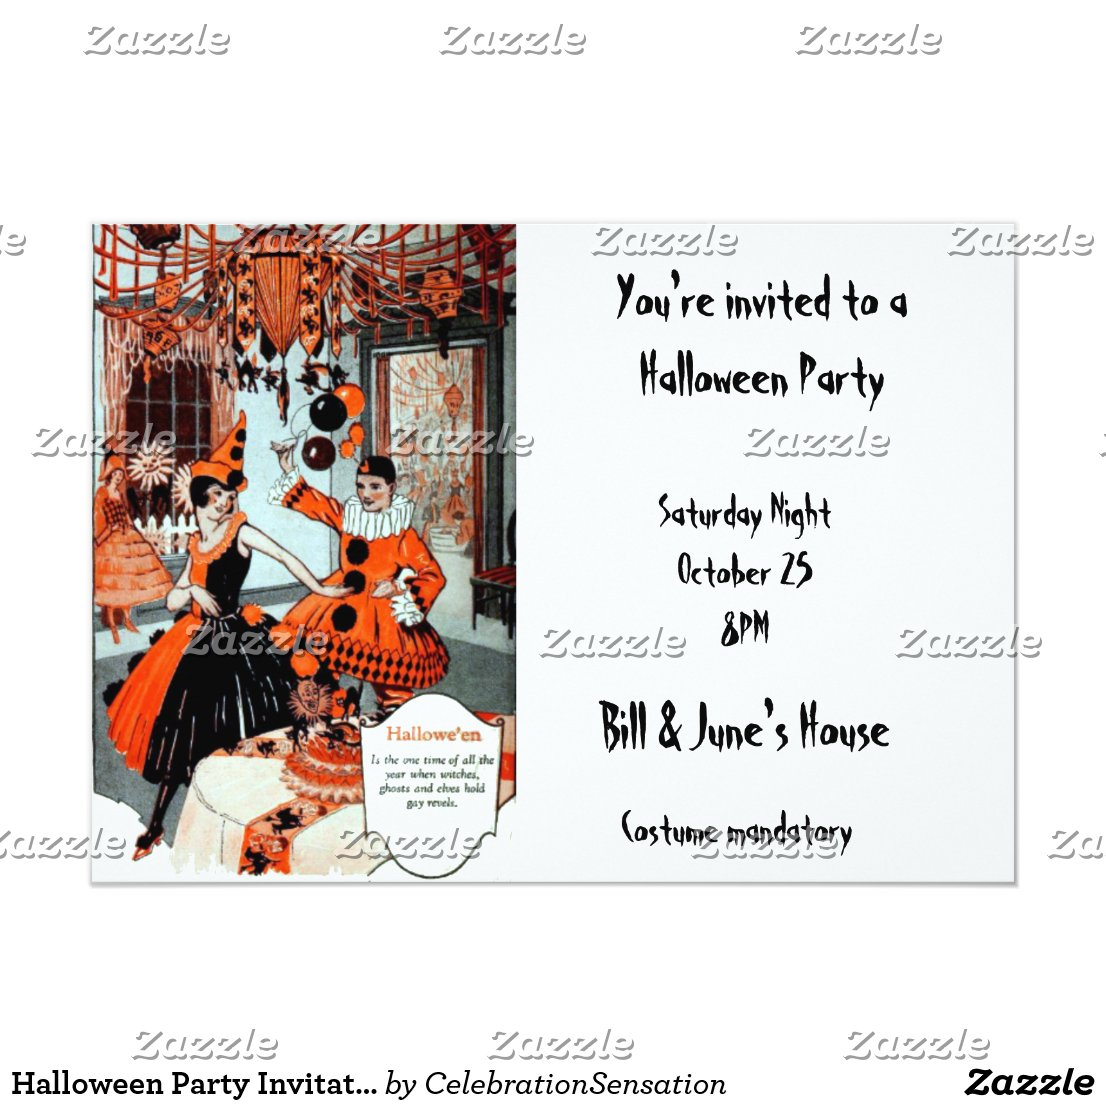 Halloween Party Invitation in Orange and Black